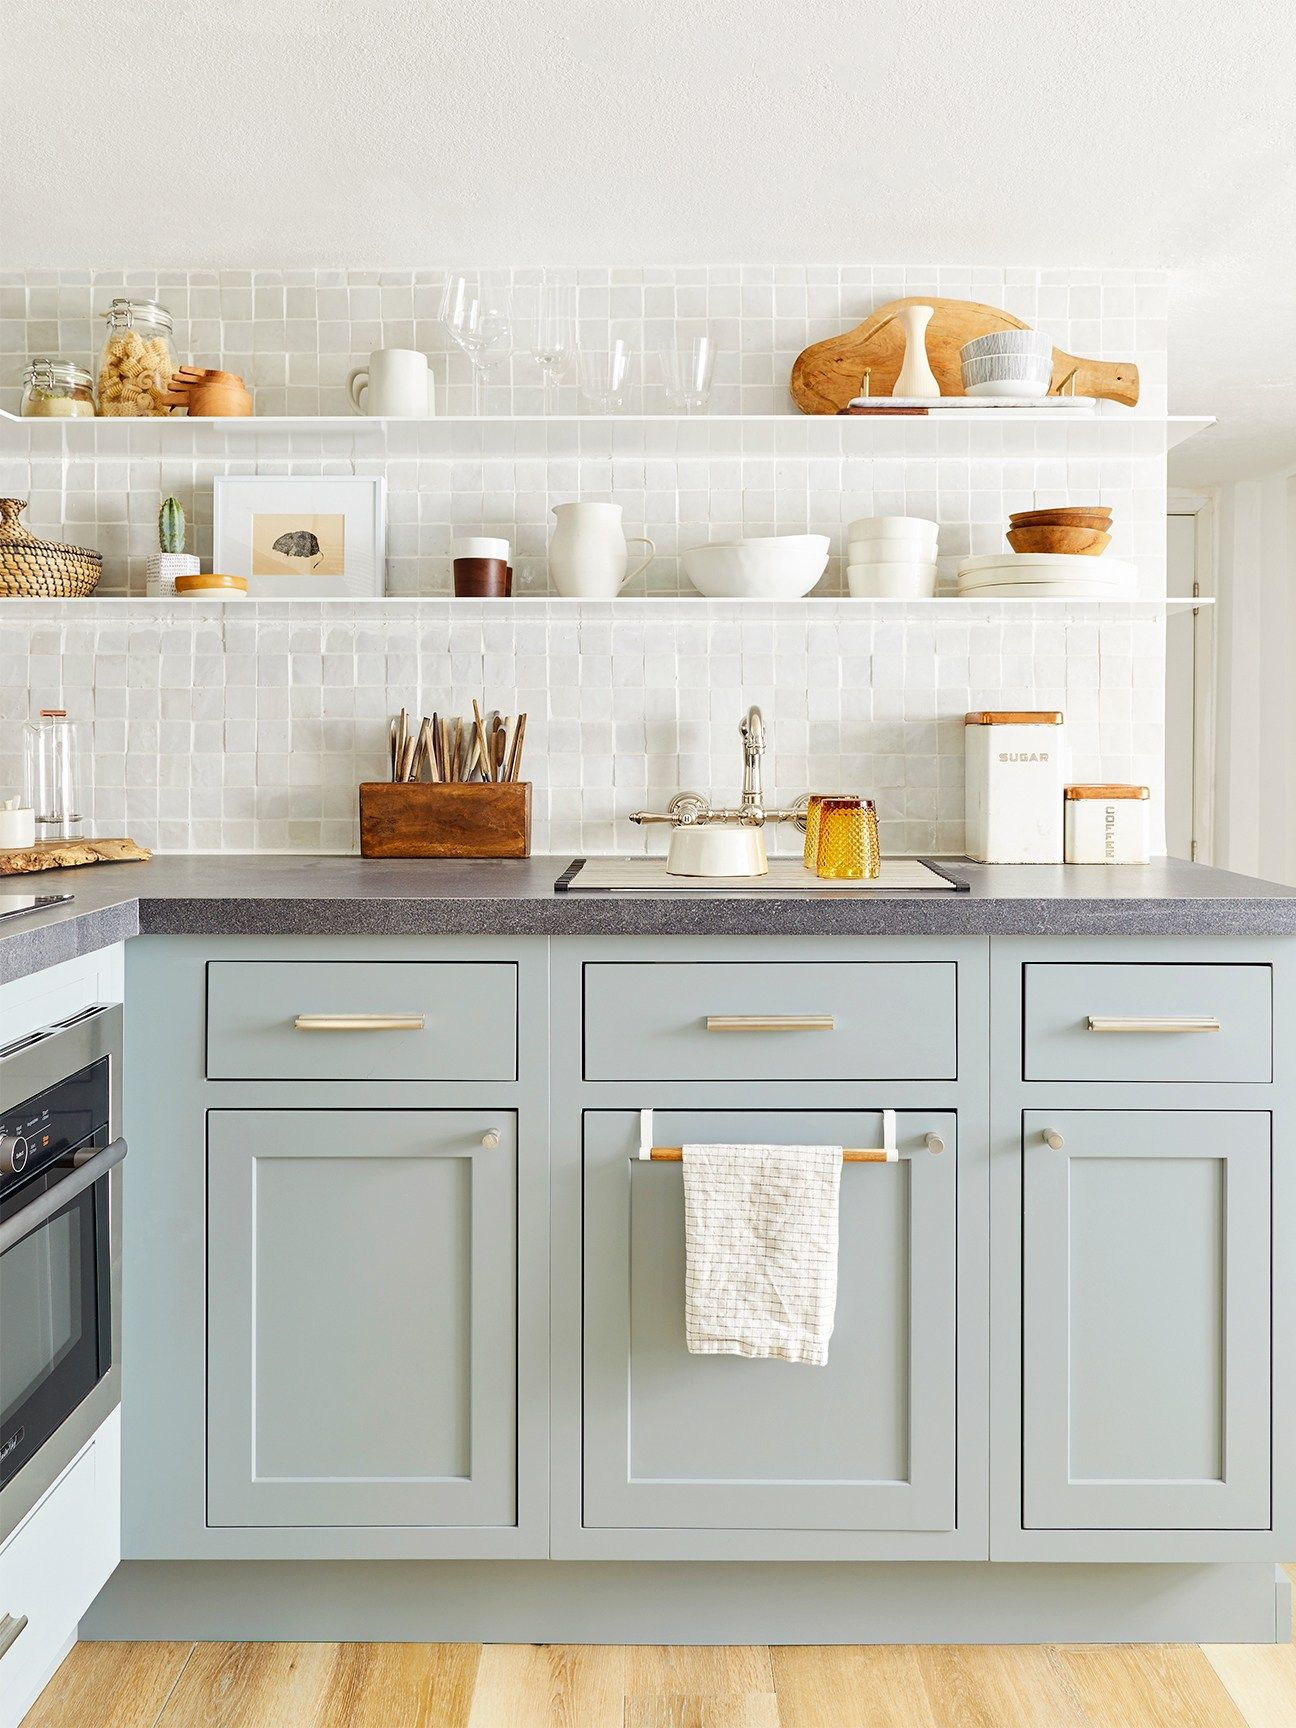 5 kitchen cabinet colors set to take over in 2020 kitchen cabinet colors best kitchen on kitchen ideas colorful id=37251